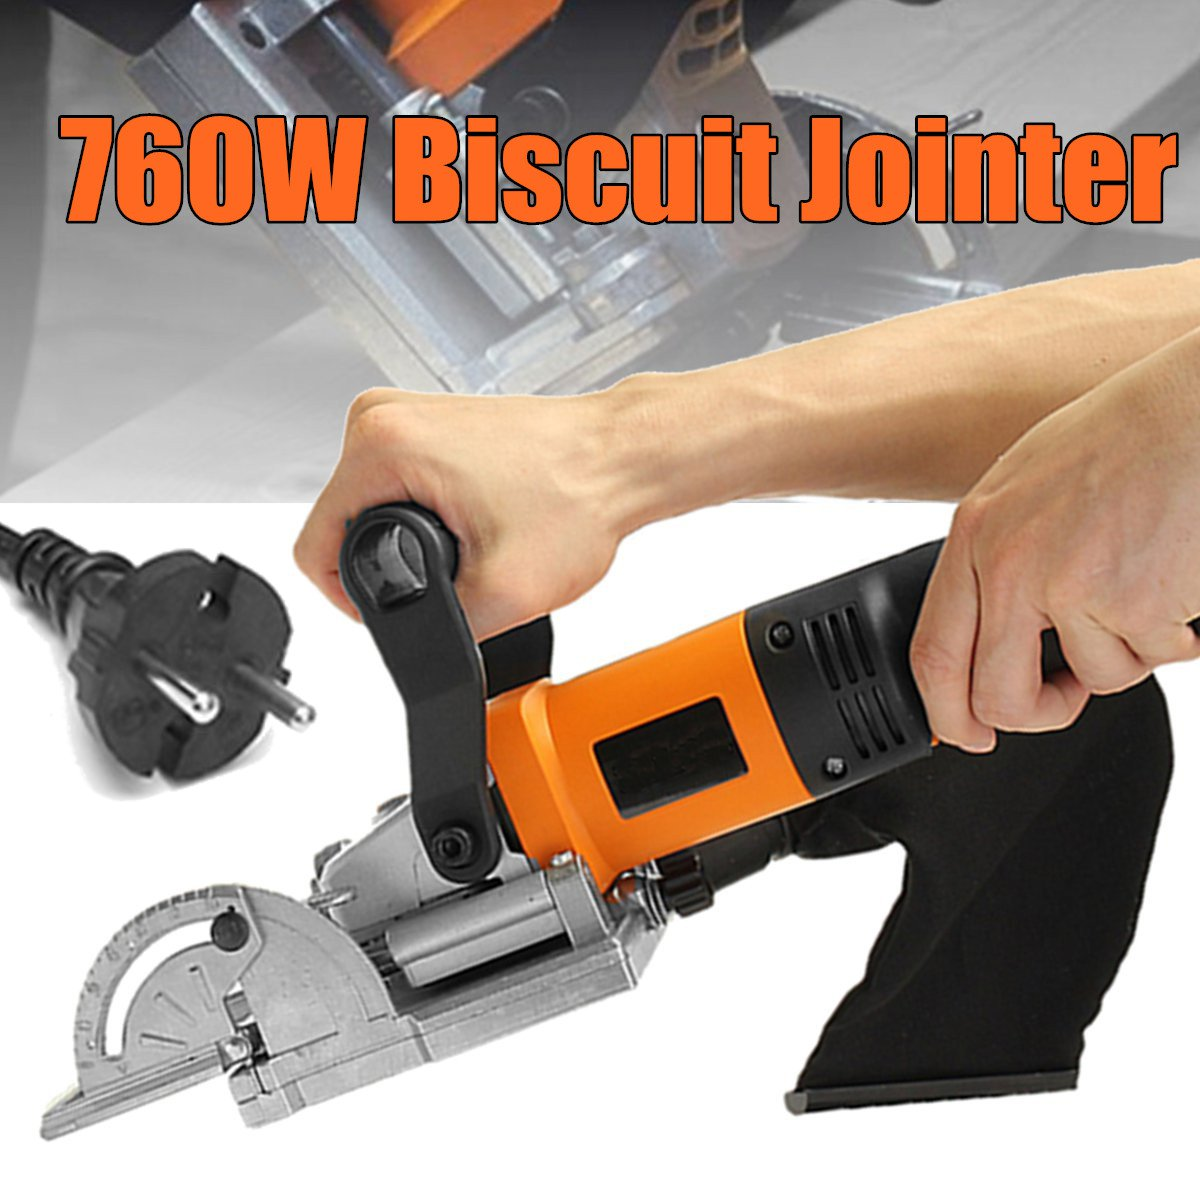 Drillpro 760W Biscuit Jointer Wood Working Tenoning Machine Biscuit Machine Puzzle Machine Groover тени для век delilah colour intense eyeshadow biscuit цвет biscuit variant hex name a57b6b